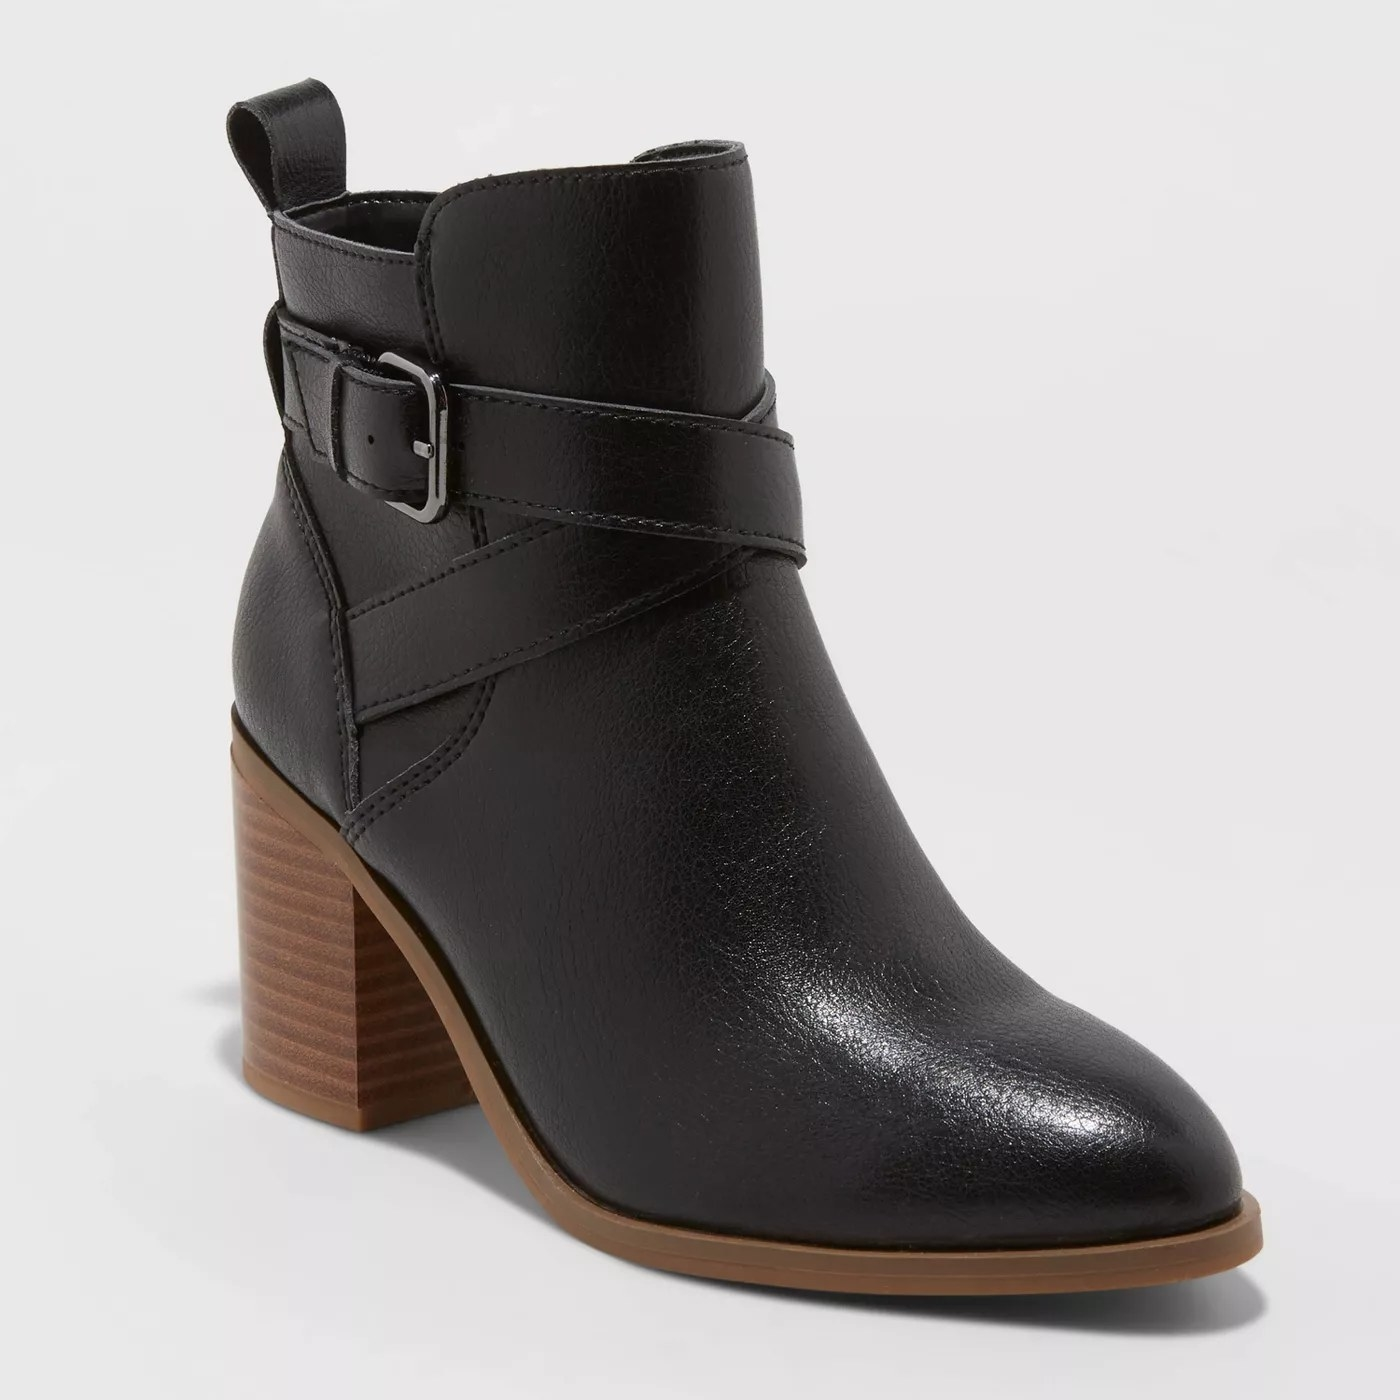 A black pair of ankle booties with brown heels and a cross-over buckle